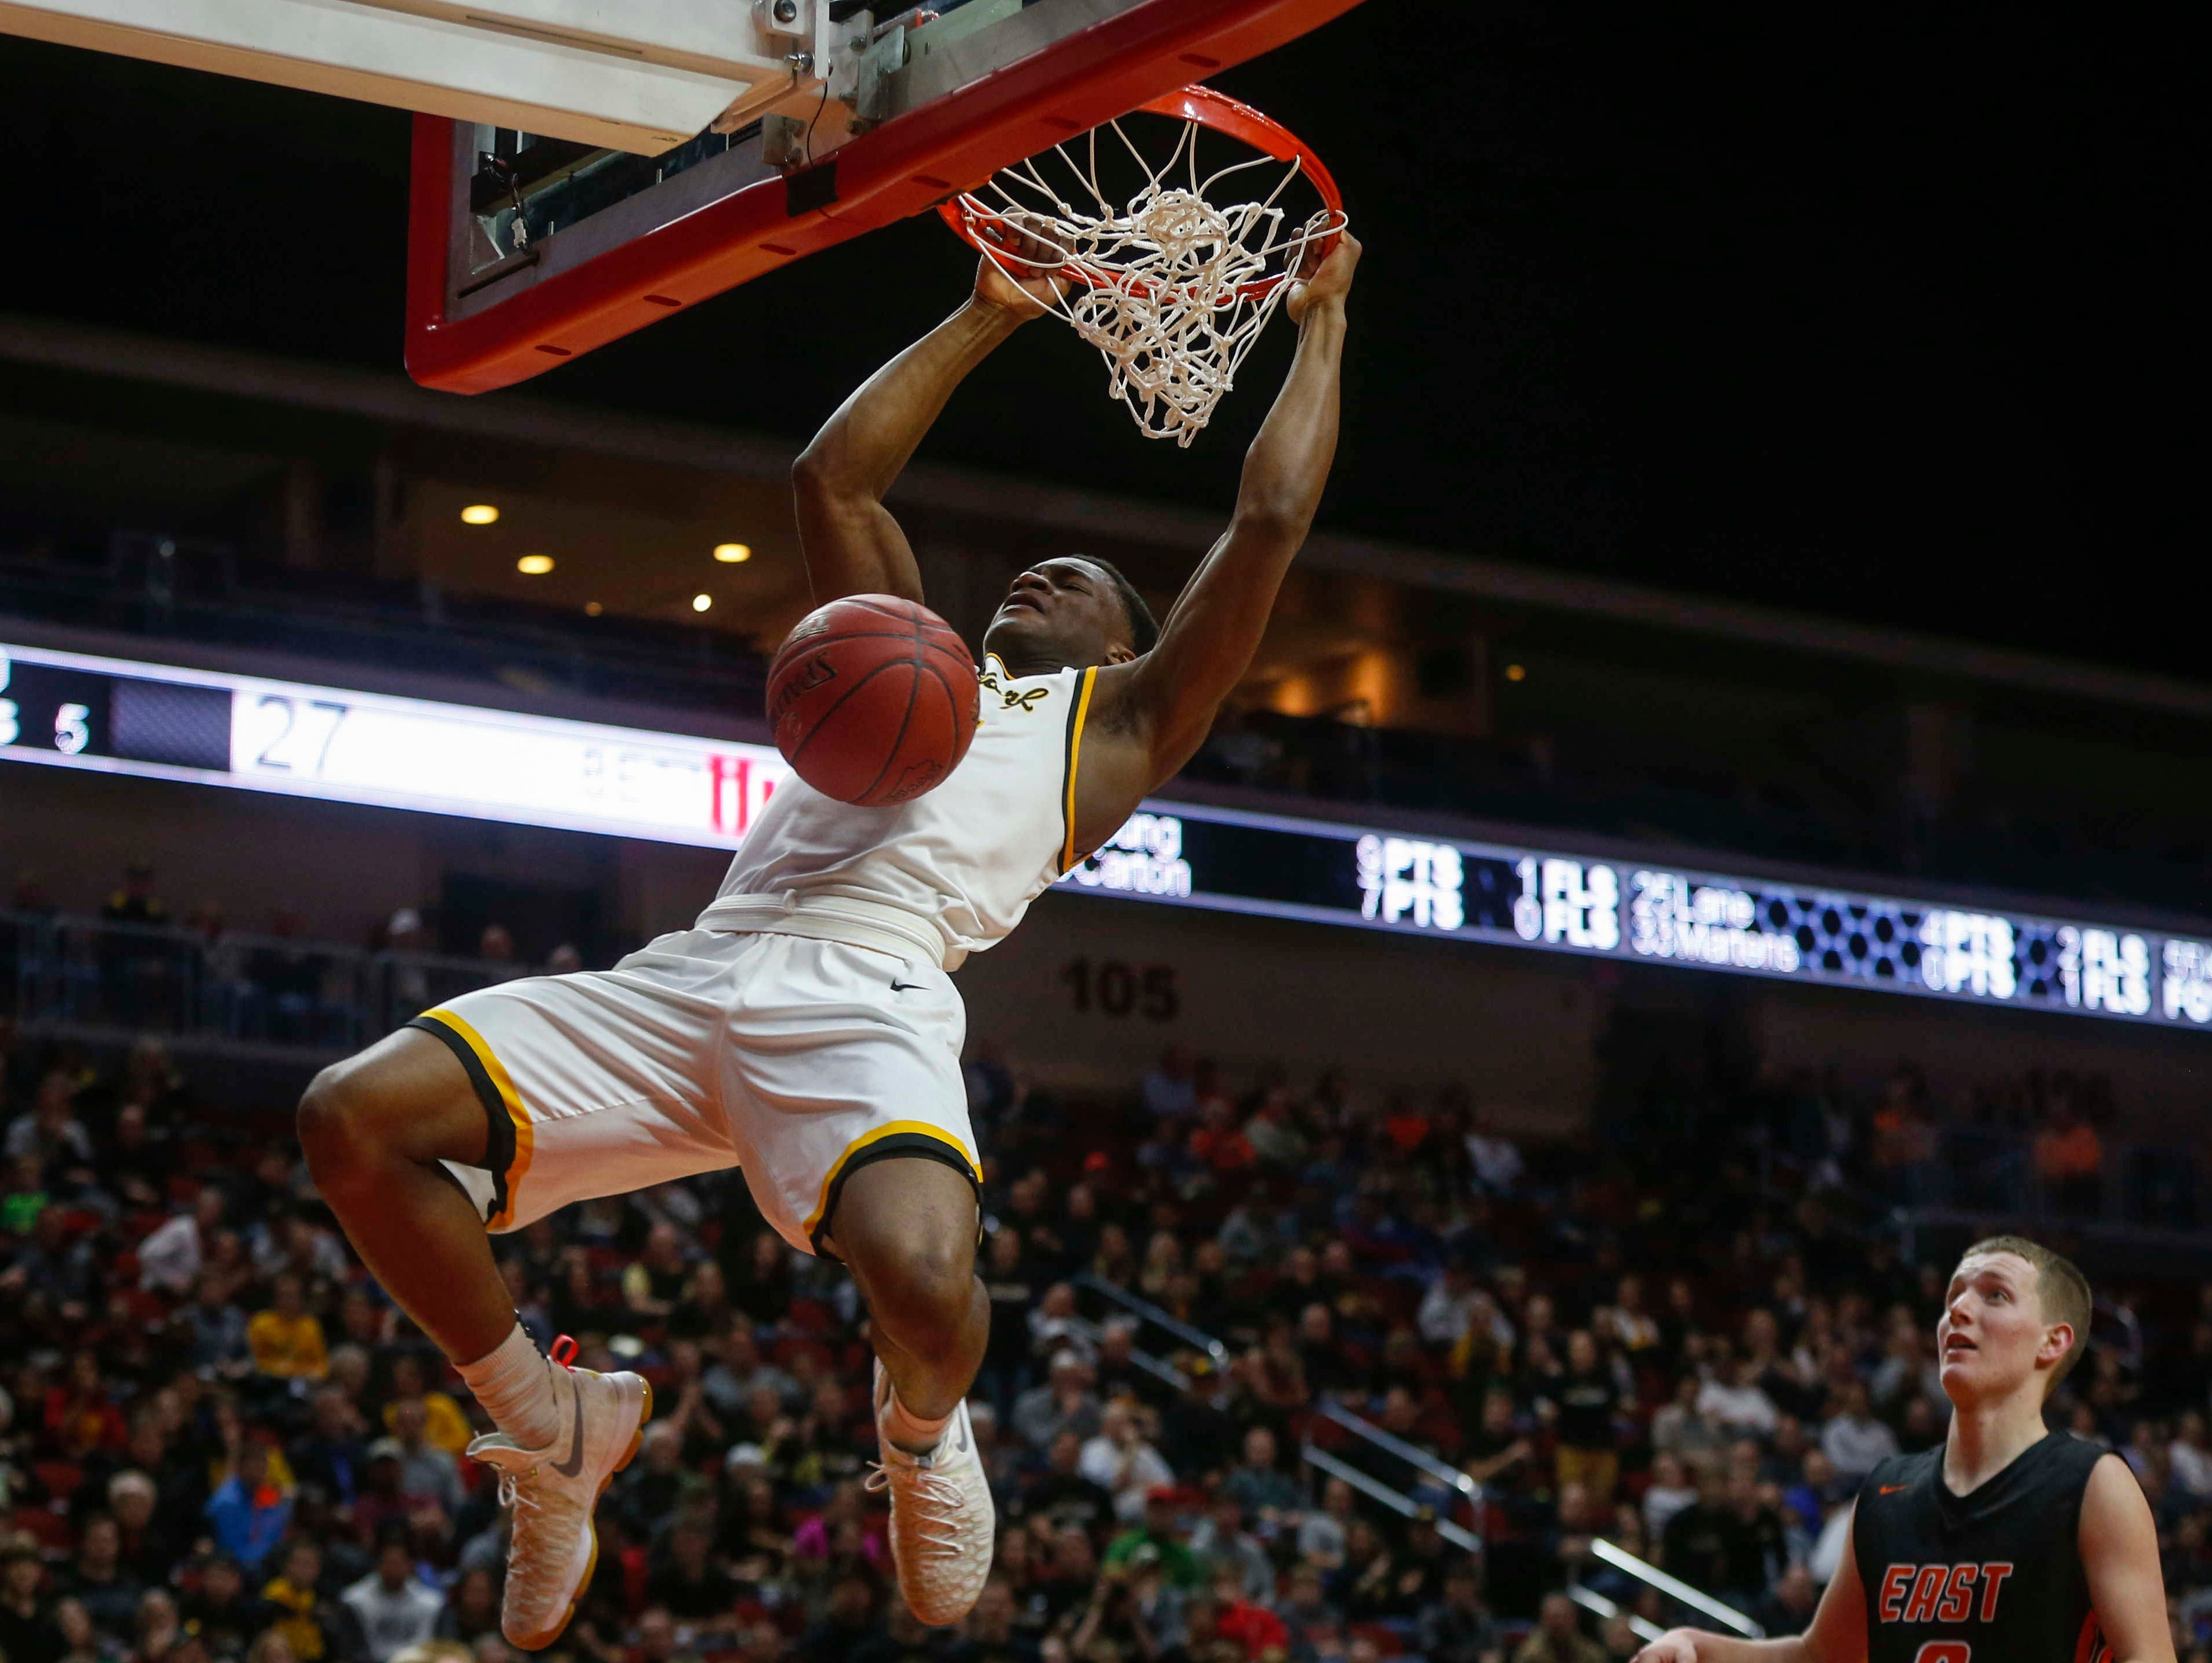 Bettendorf senior Suni Lane throws down one of his two dunks against Sioux City East during the Iowa High School state basketball tournament at Wells Fargo Arena in Des Moines on Wednesday, March 8, 2017.